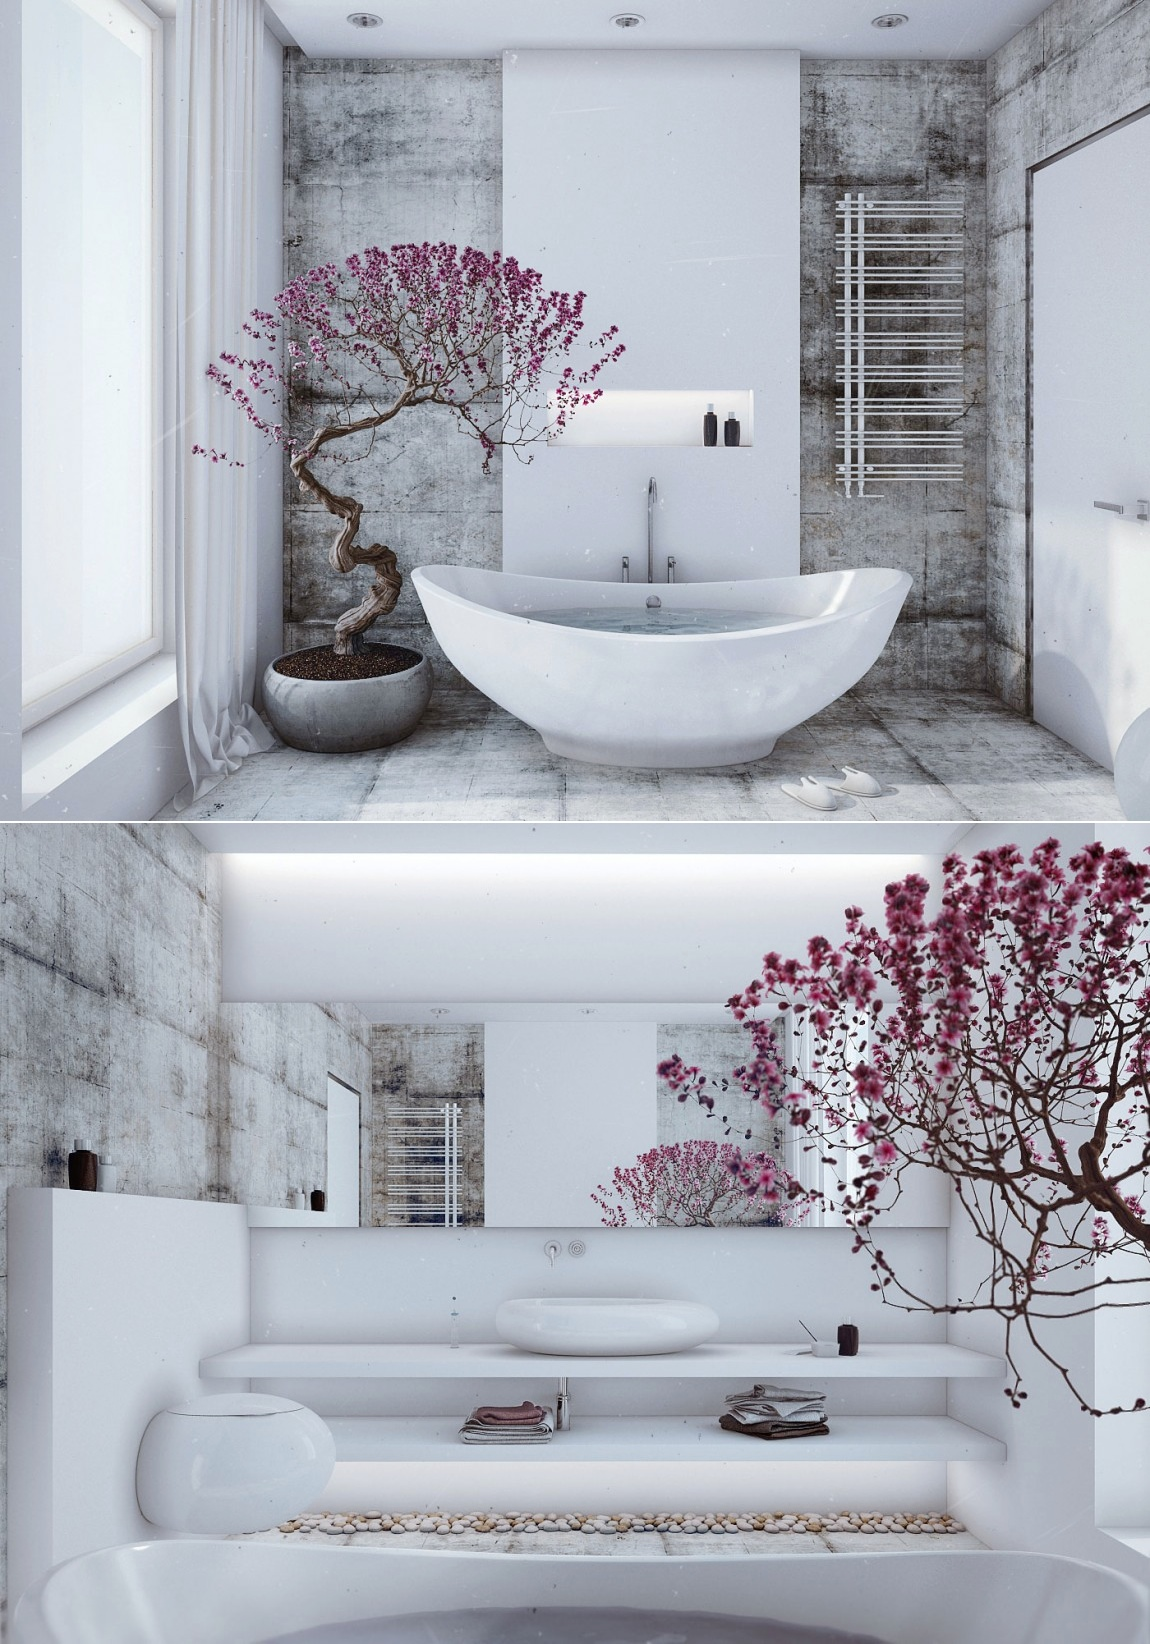 Bathroom Zen Design Ideas zen bathroom design | interior design ideas.